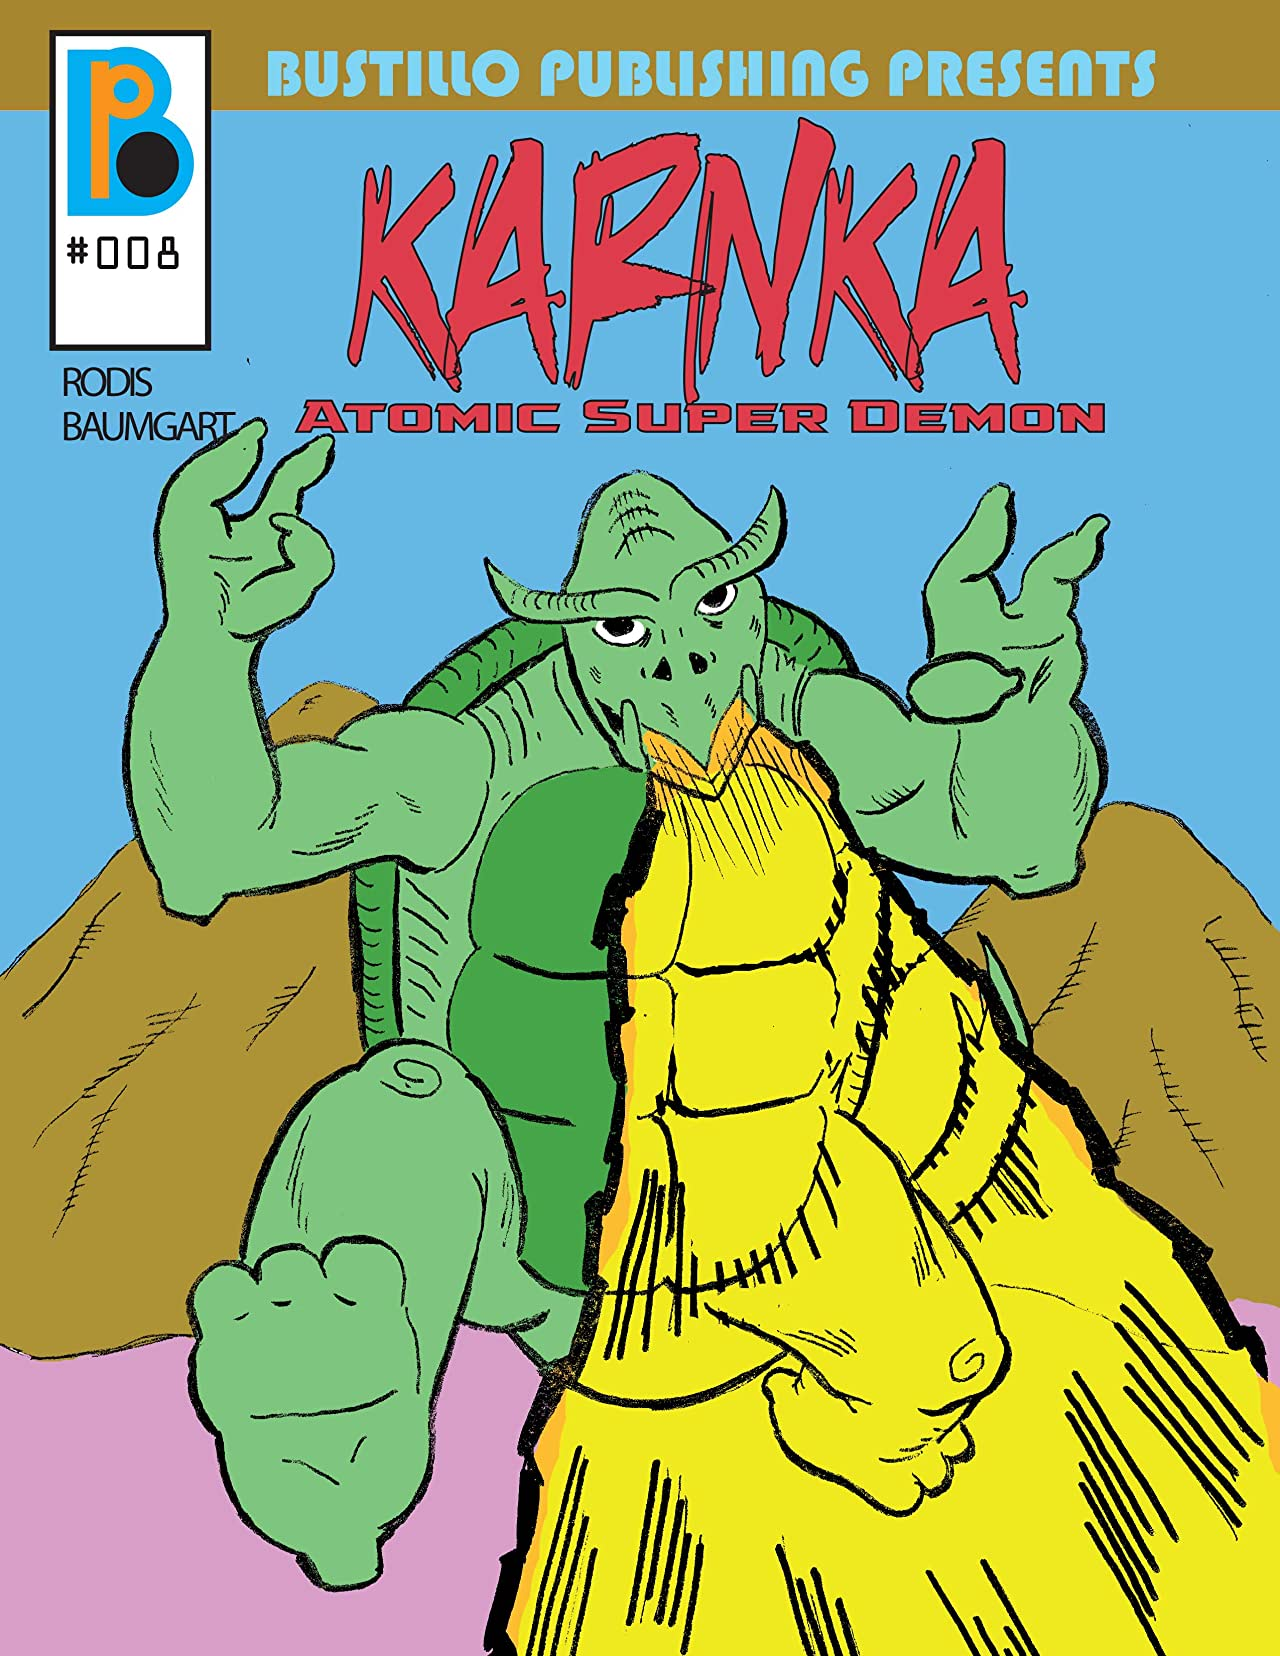 Bustillo Publishing Presents Vol. 8: Karnaka: Atomic Super Demon